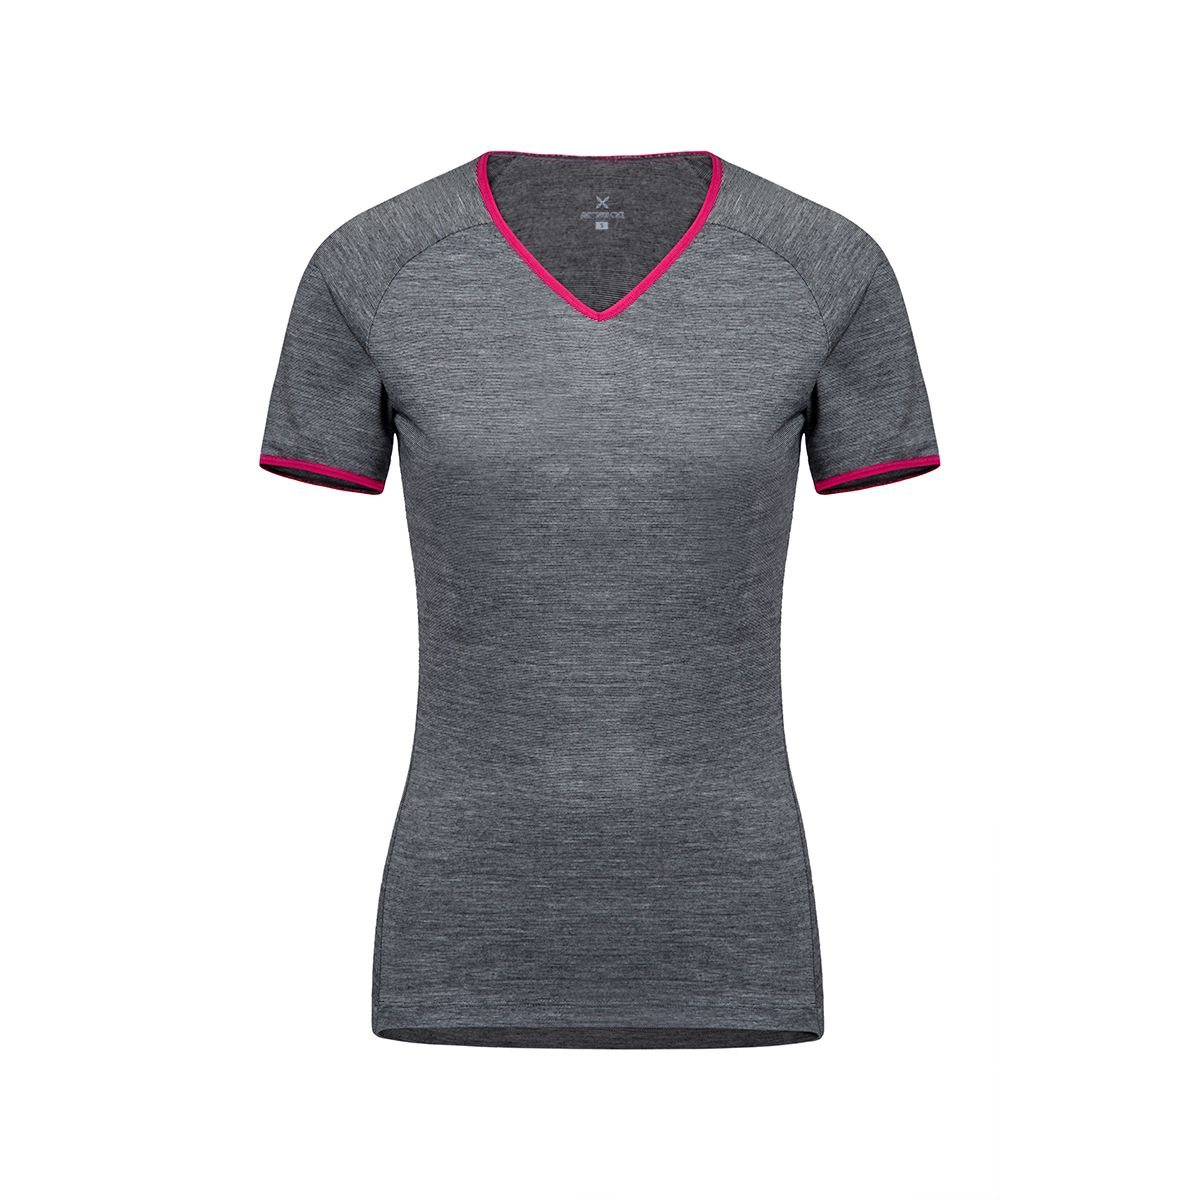 Montura Damen Run Wool T-Shirt (Größe XL, Schwarz) | T-Shirts Merino > Damen